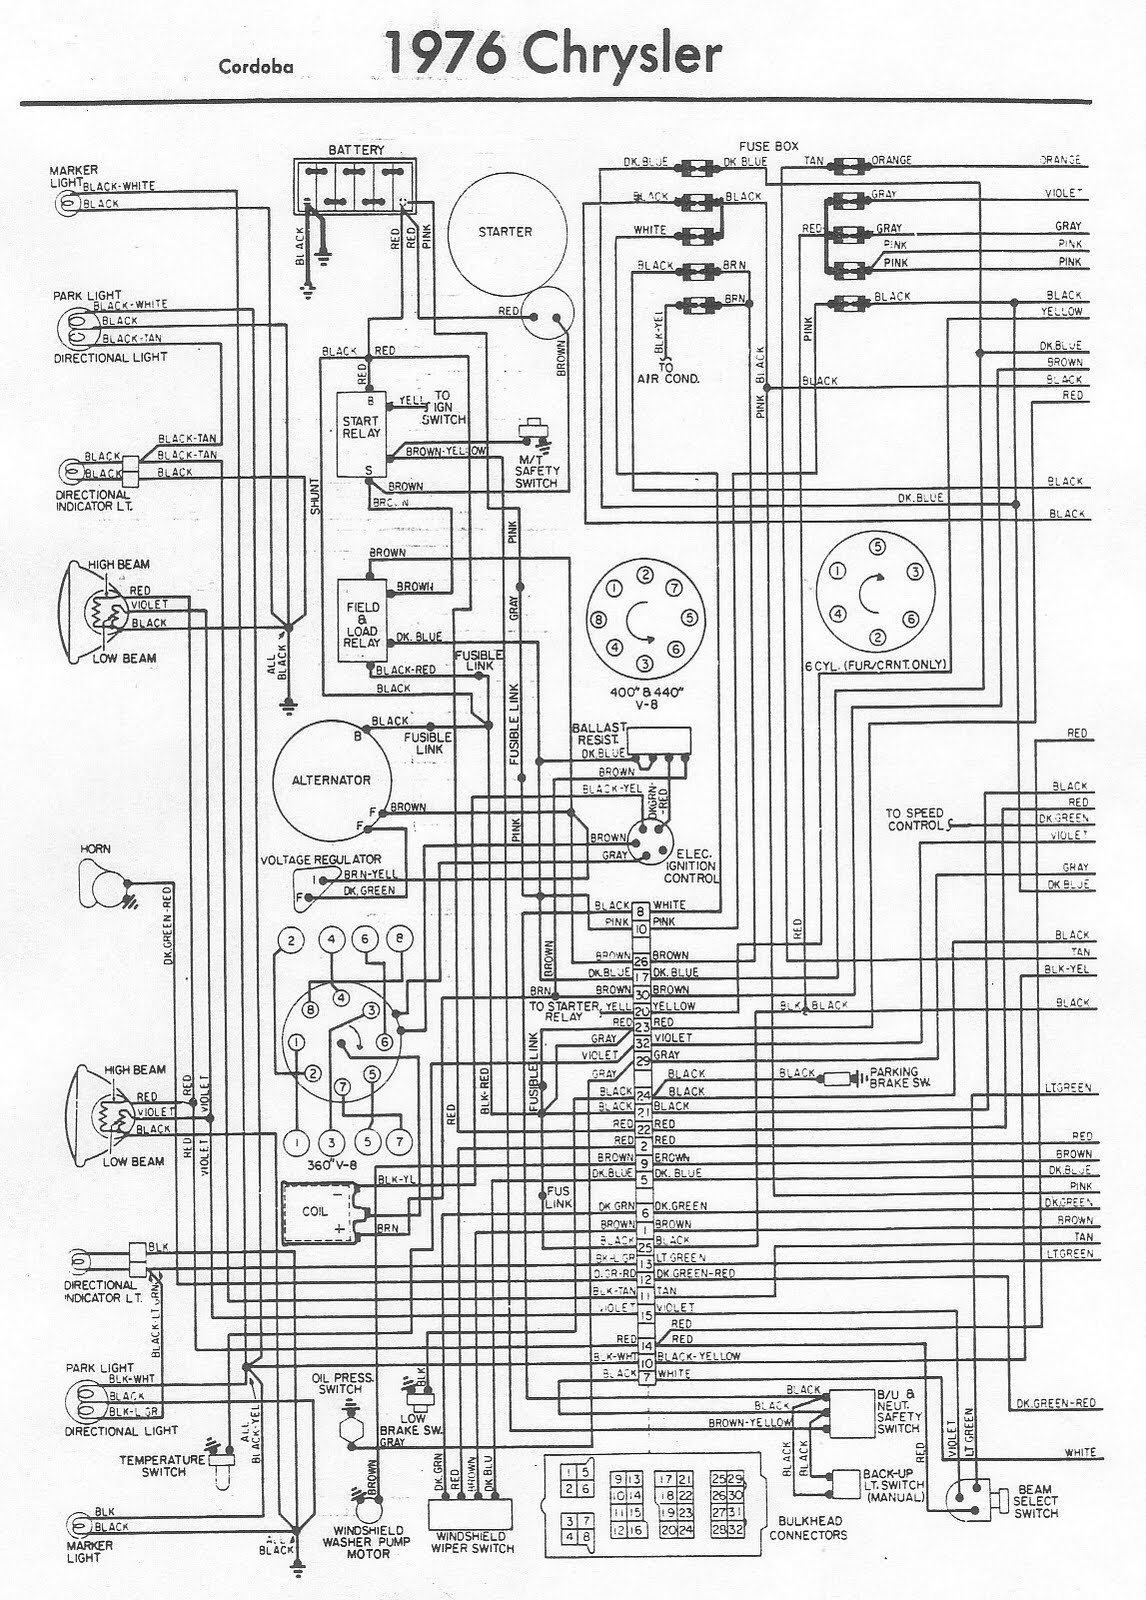 fuel gauge wiring diagram plymouth free auto    wiring       diagram    1976 chrysler cordoba engine  free auto    wiring       diagram    1976 chrysler cordoba engine